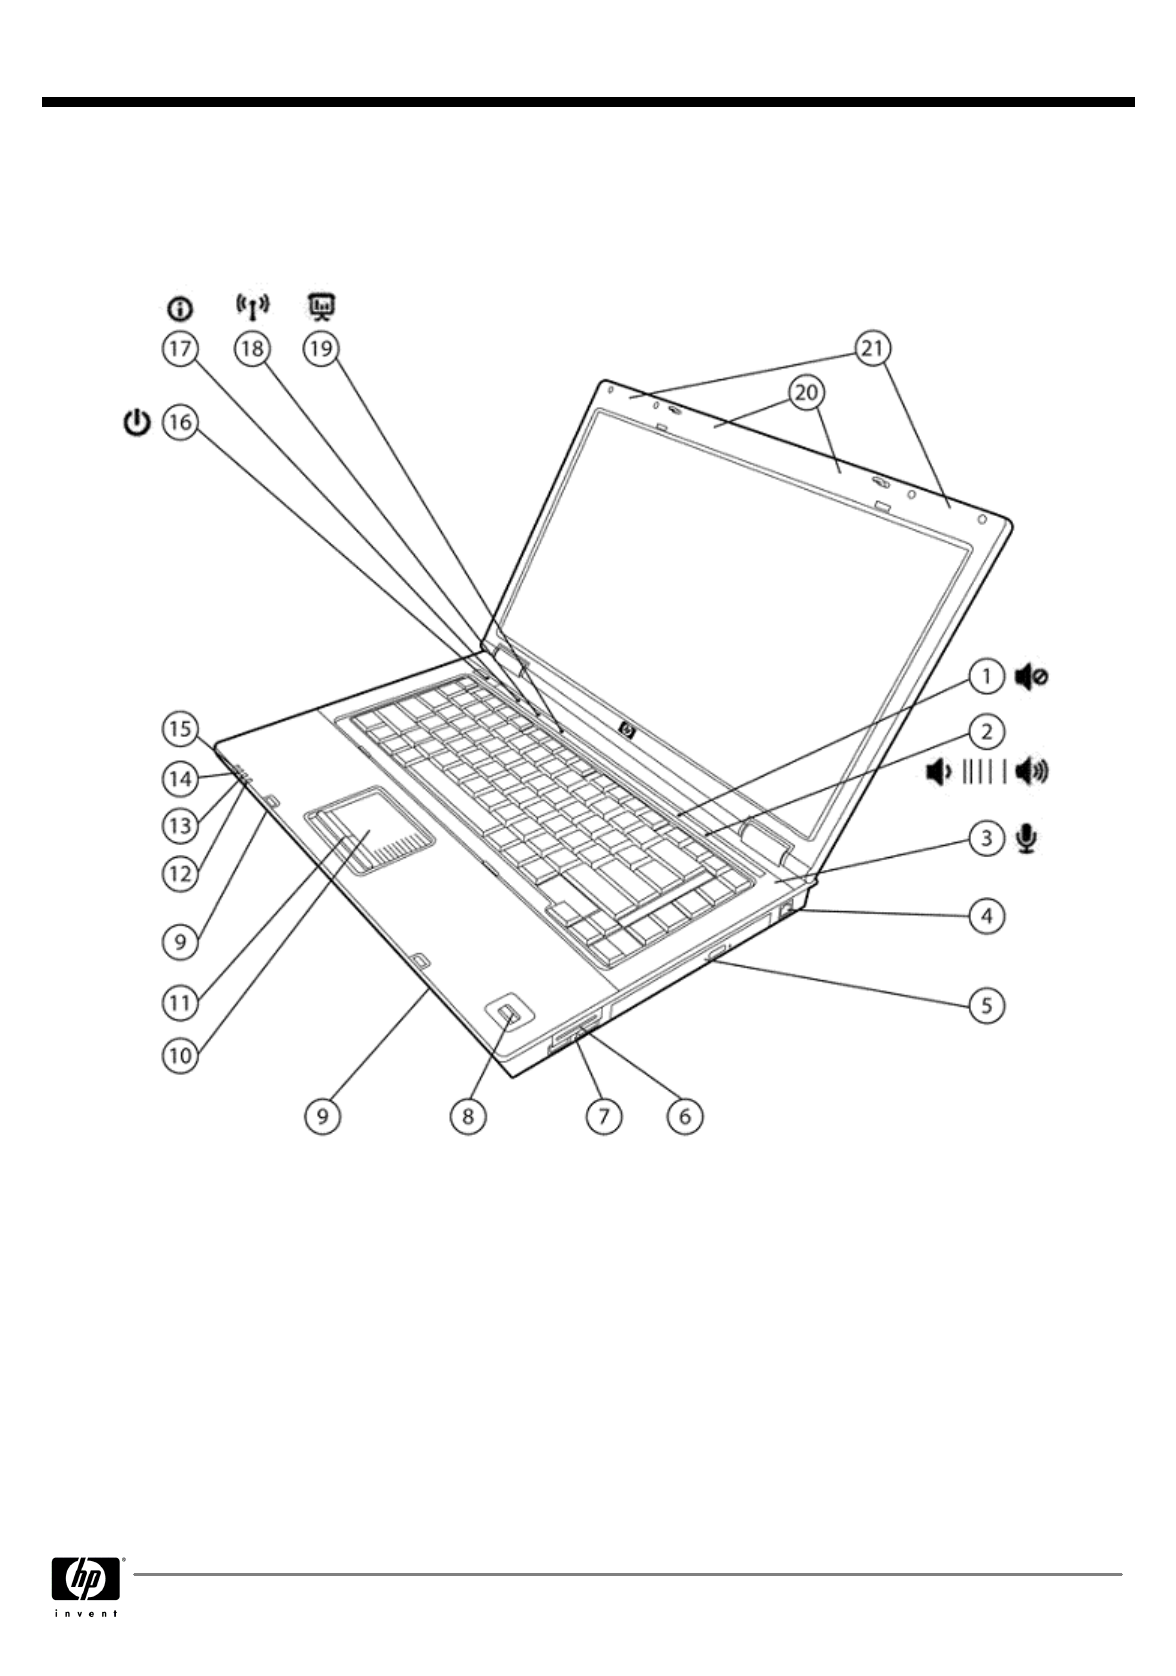 HP (Hewlett-Packard) Laptop 6710b User Guide